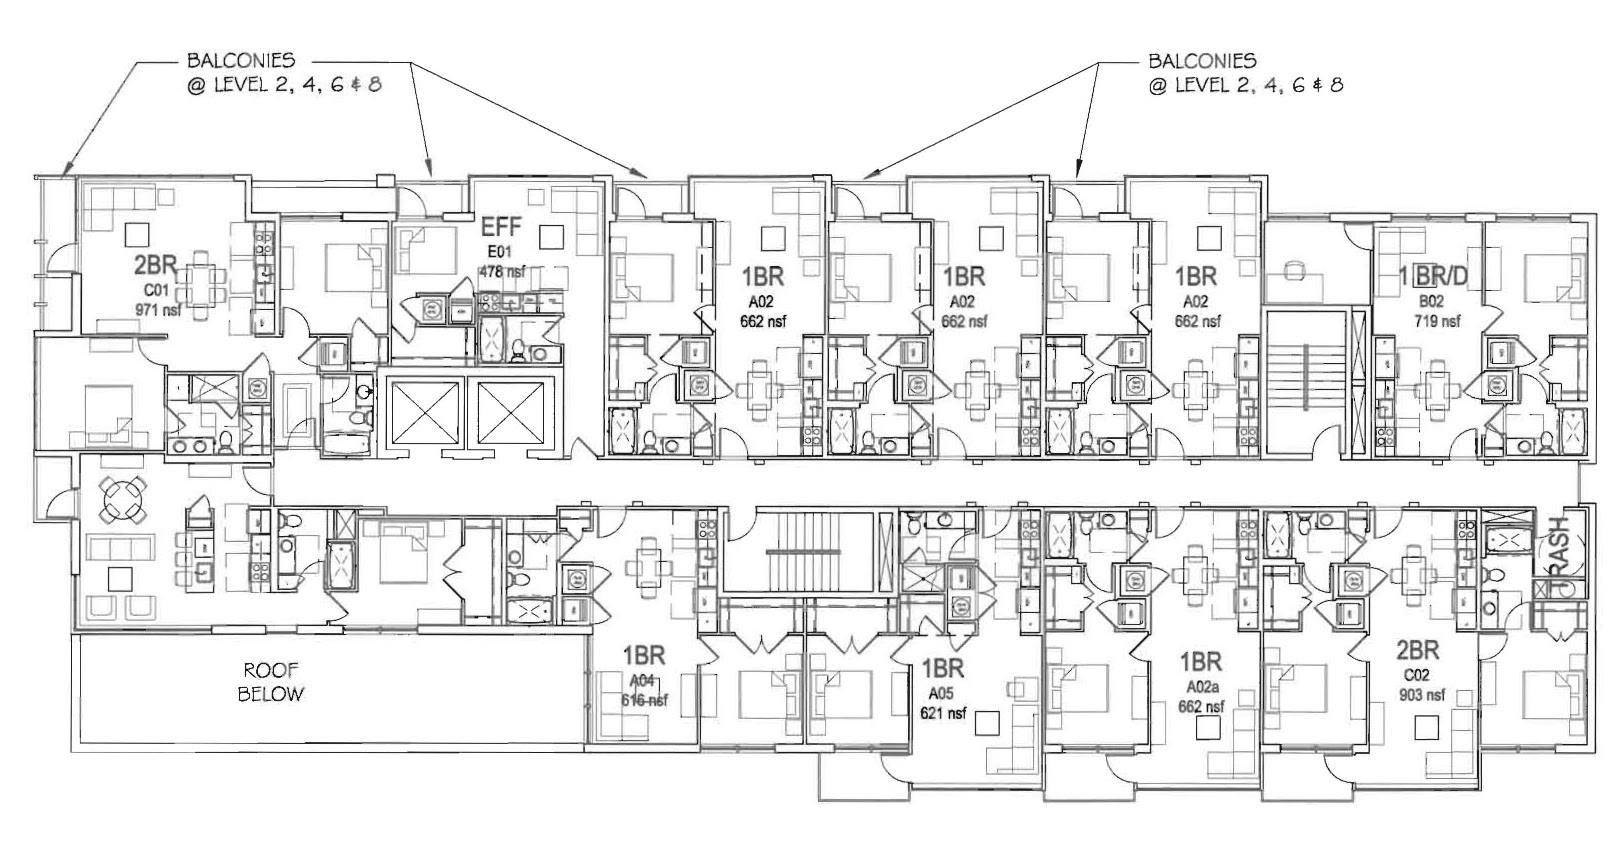 Revised plans for apartment building at 22th & V - Meridian Hill